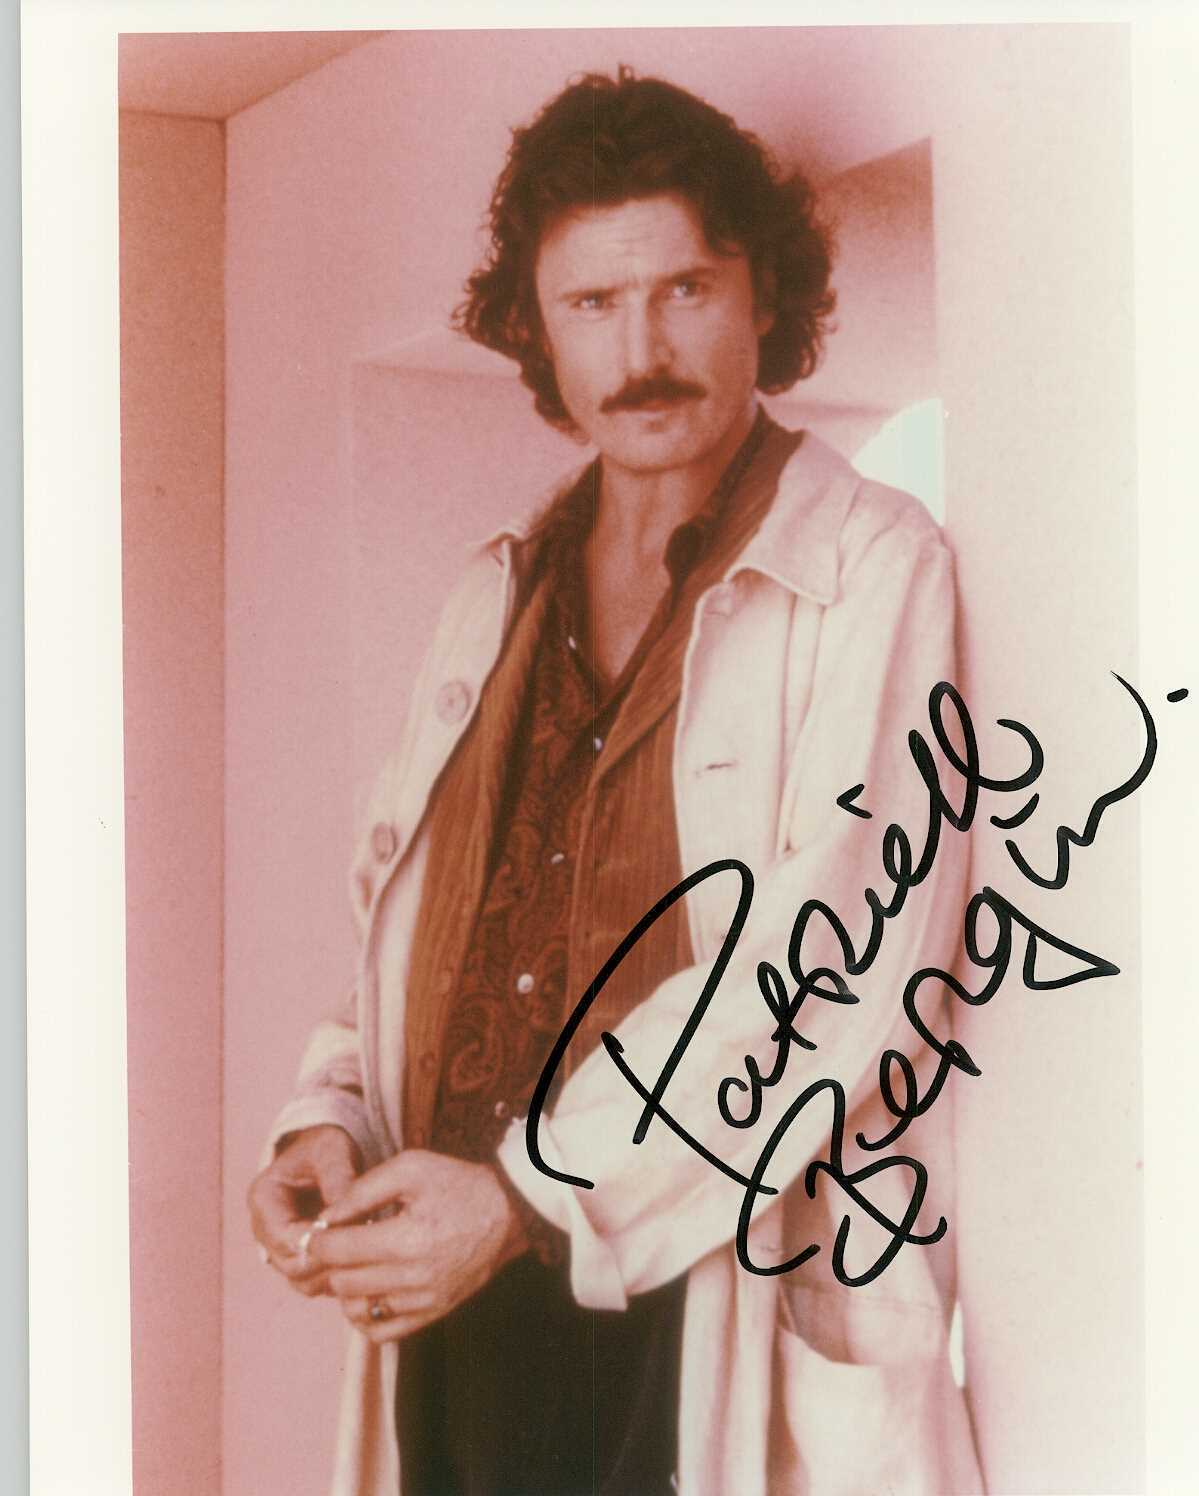 Primary image for Patrick Bergin Signed Autographed Glossy 8x10 Photo